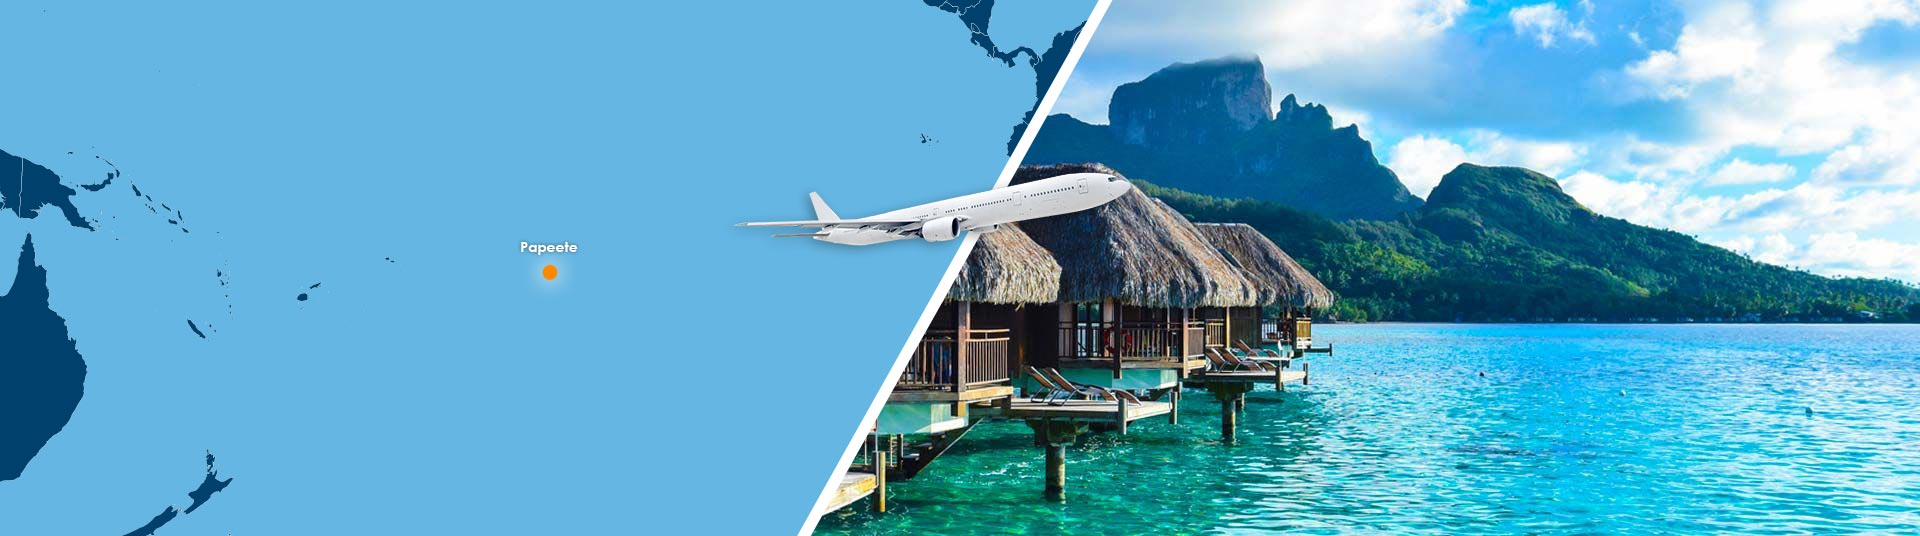 Vol papeete bora bora pas cher r server un billet avion for Reserver pas cher